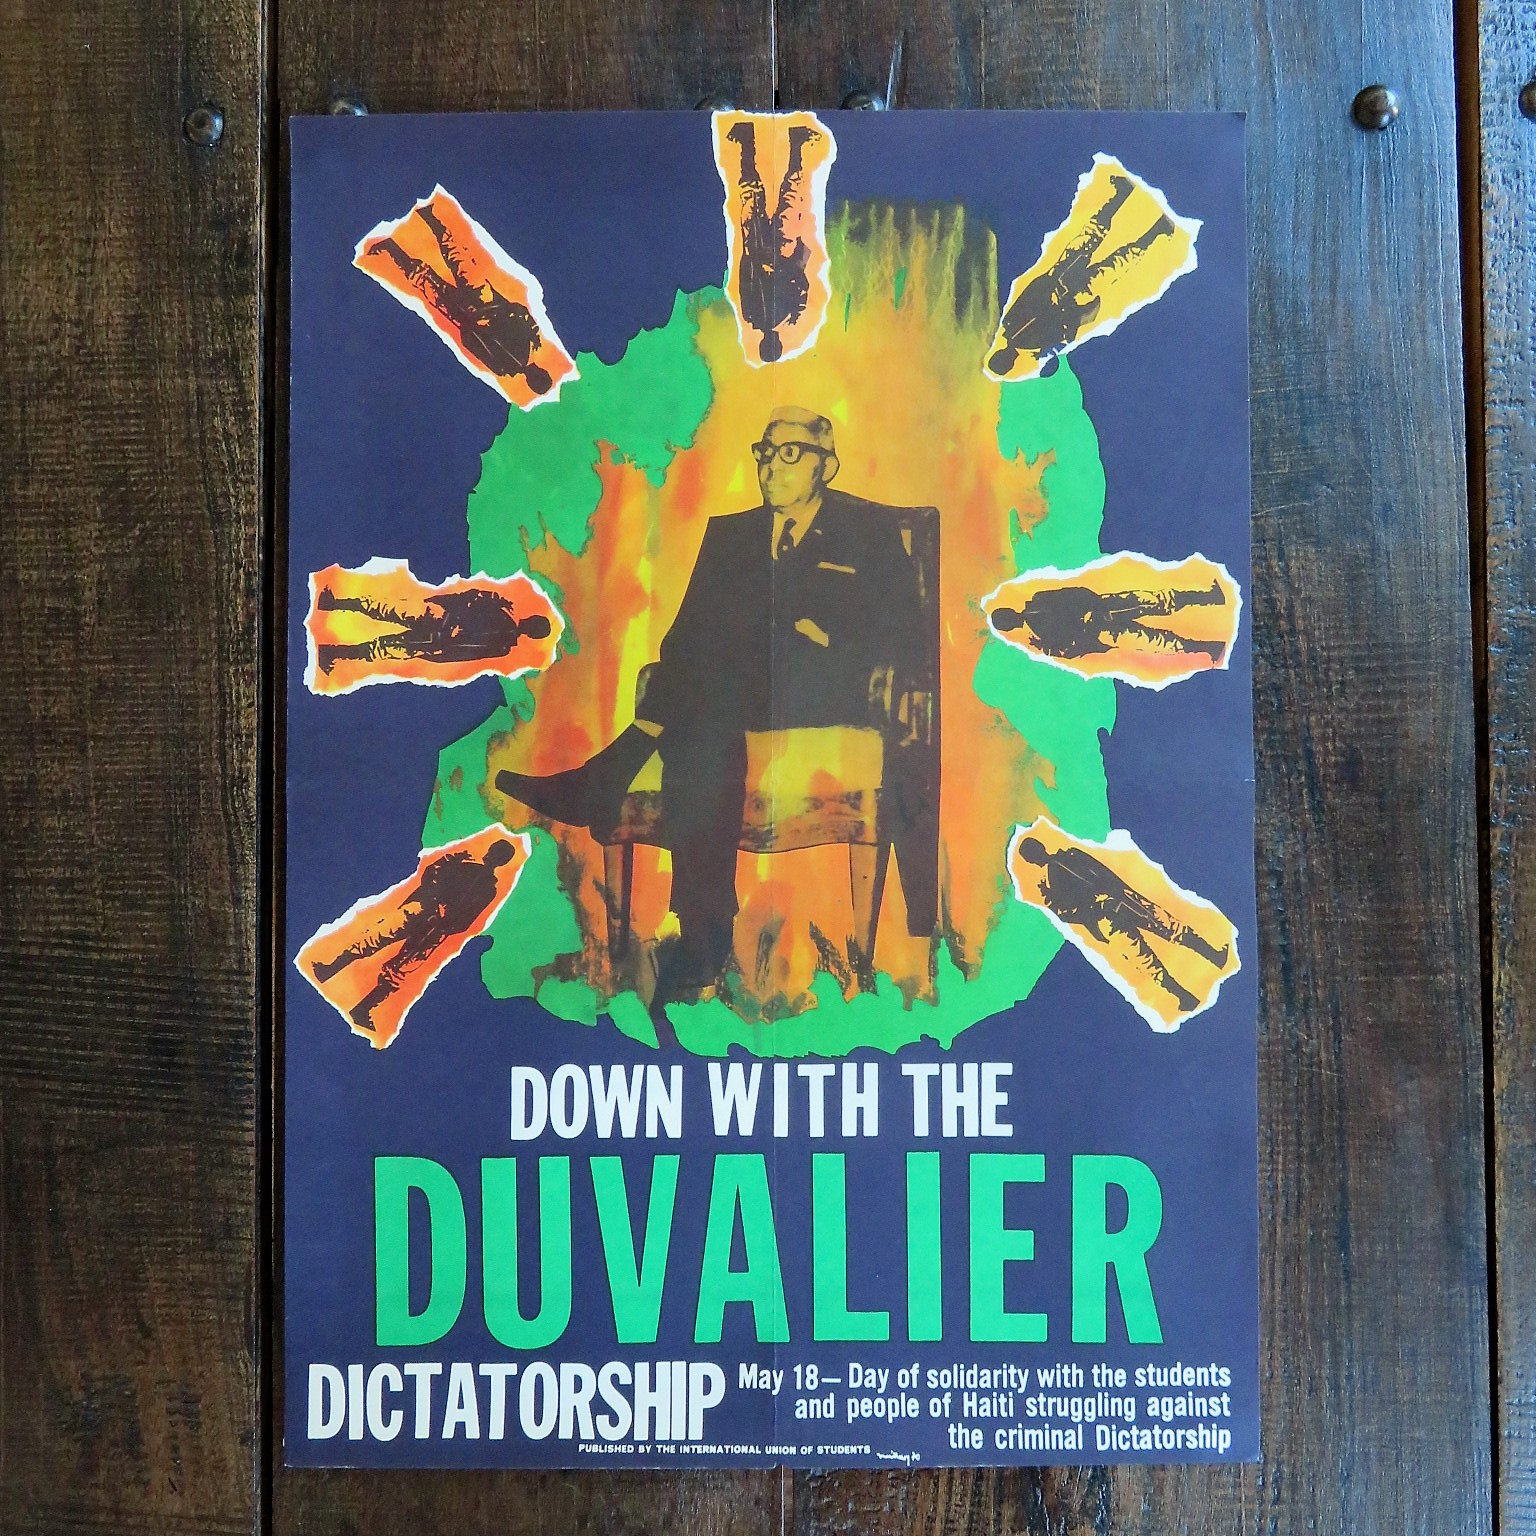 poster-down-with-the-duvalier-dictatorship-1